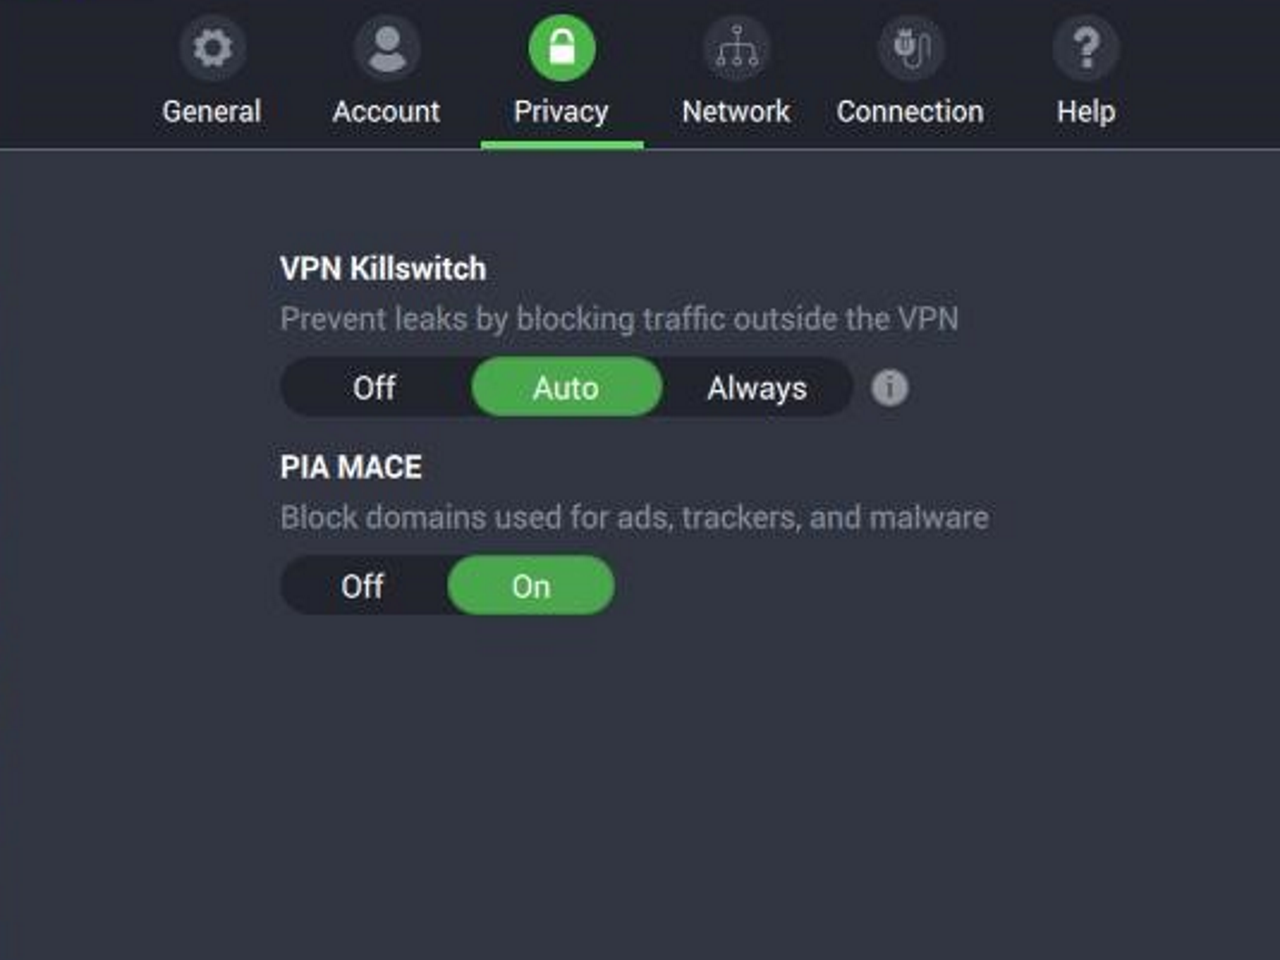 PIA's privacy settings